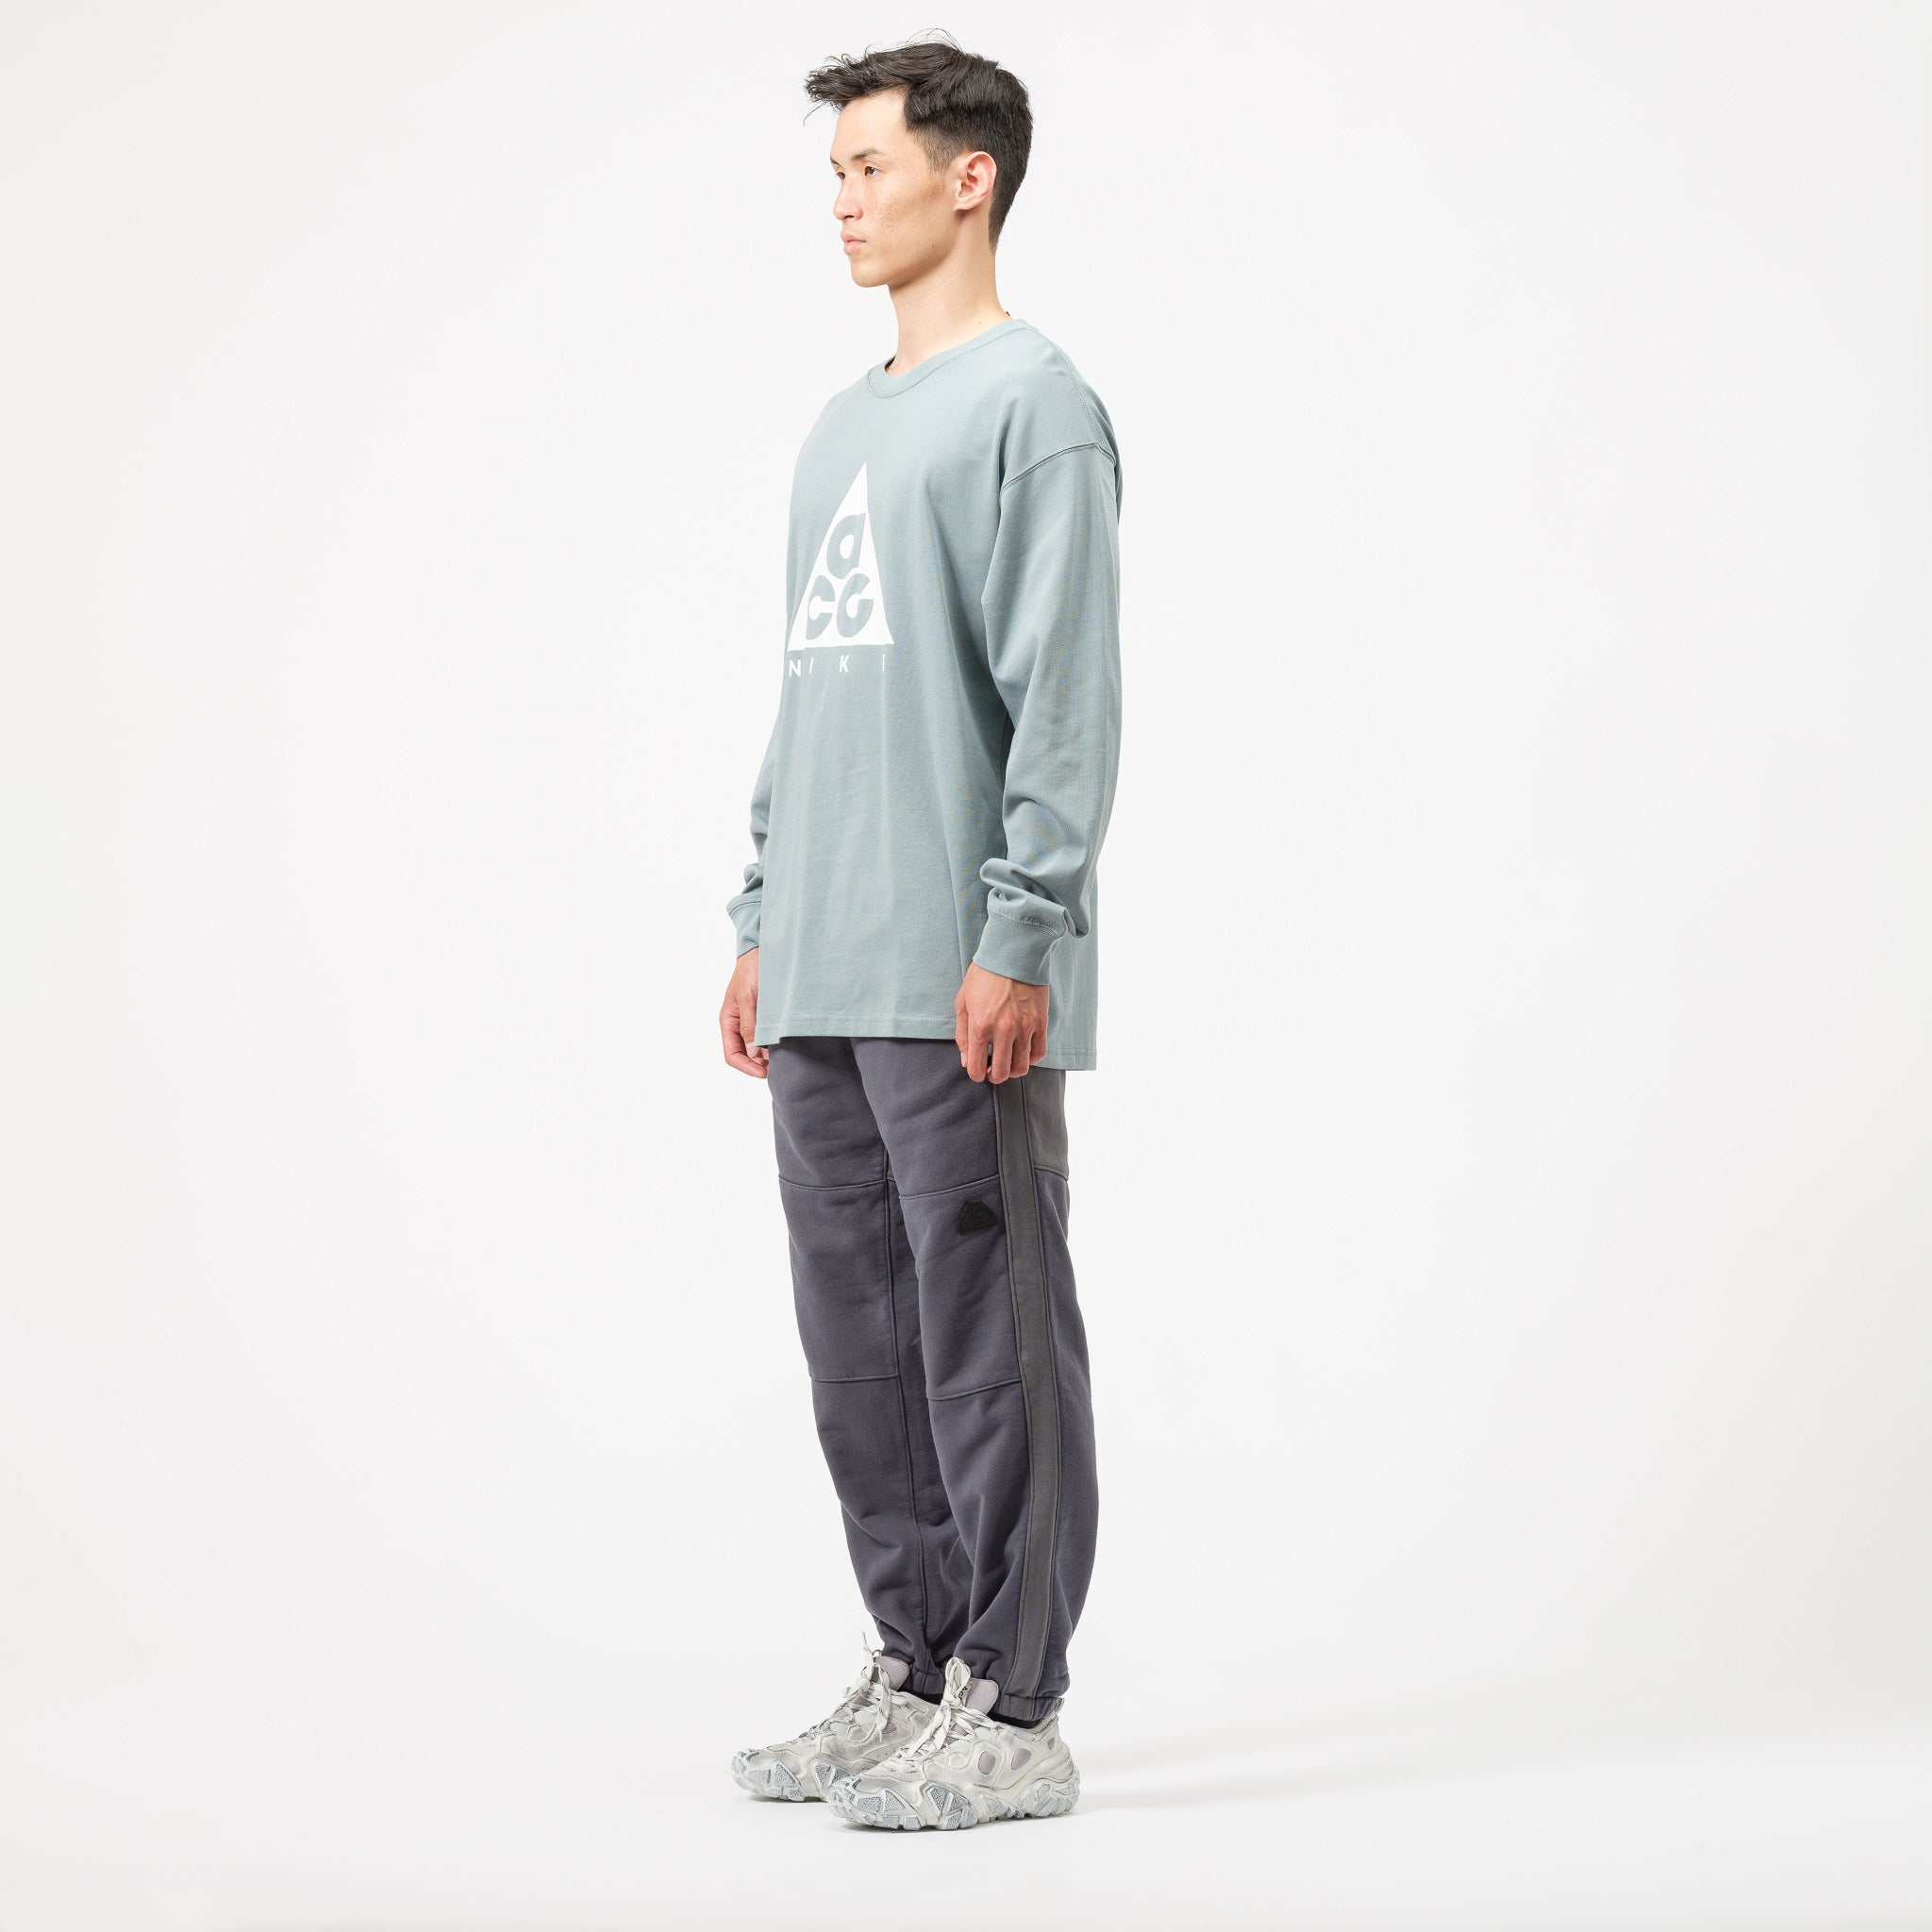 ACG Long-Sleeve T-Shirt in Aviator Grey